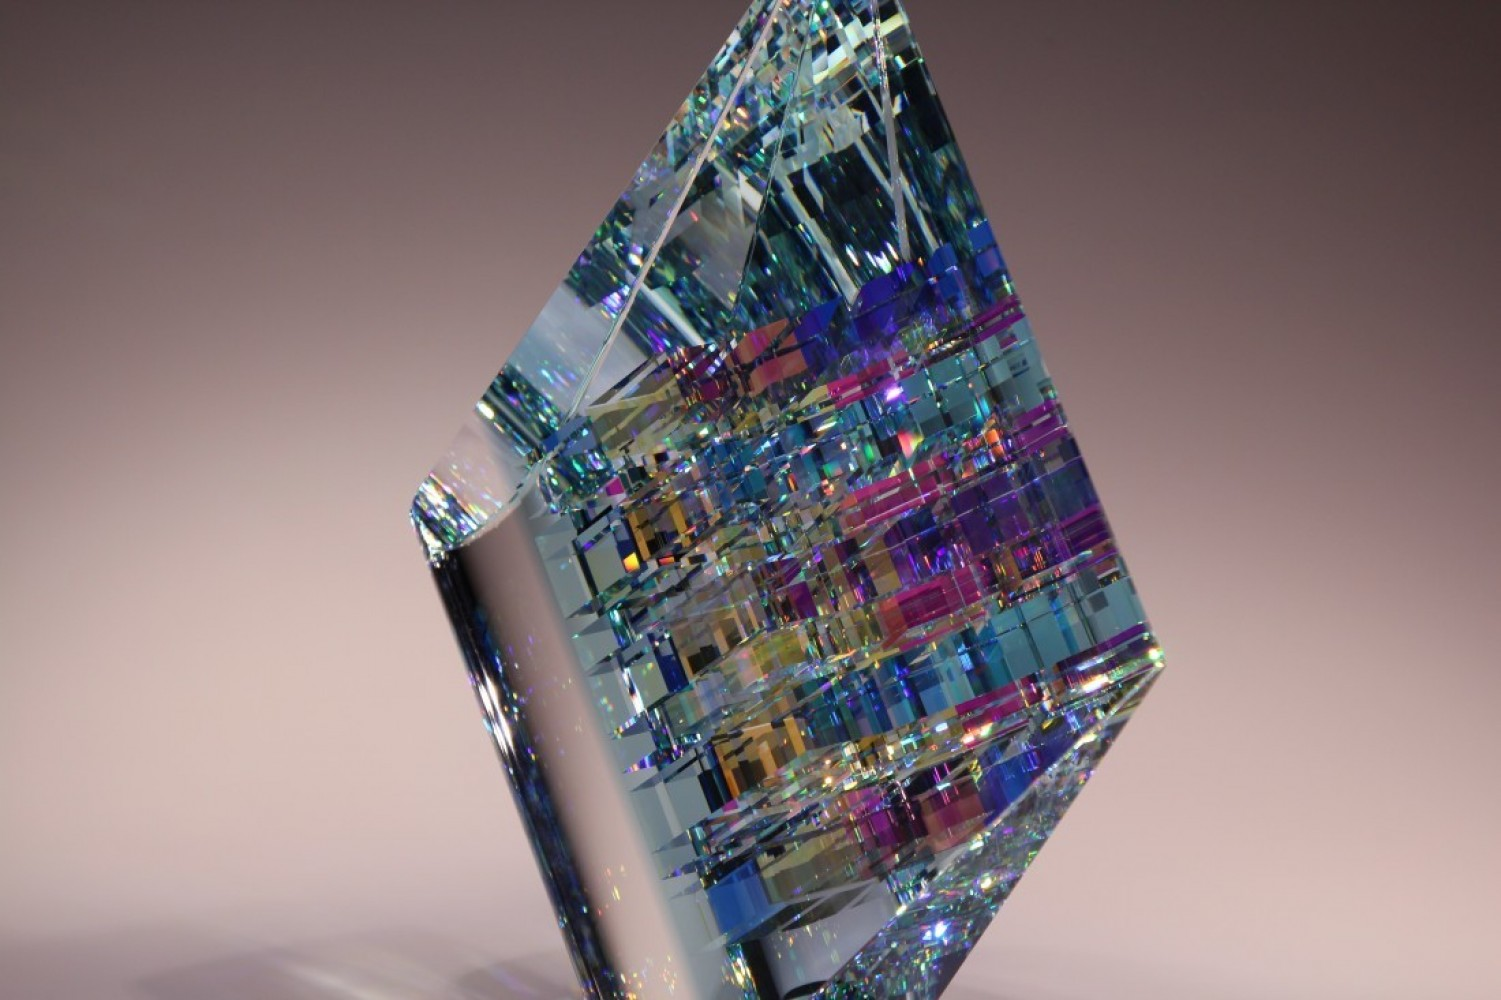 Medium Blue Arial Crystal Sculpture 2015